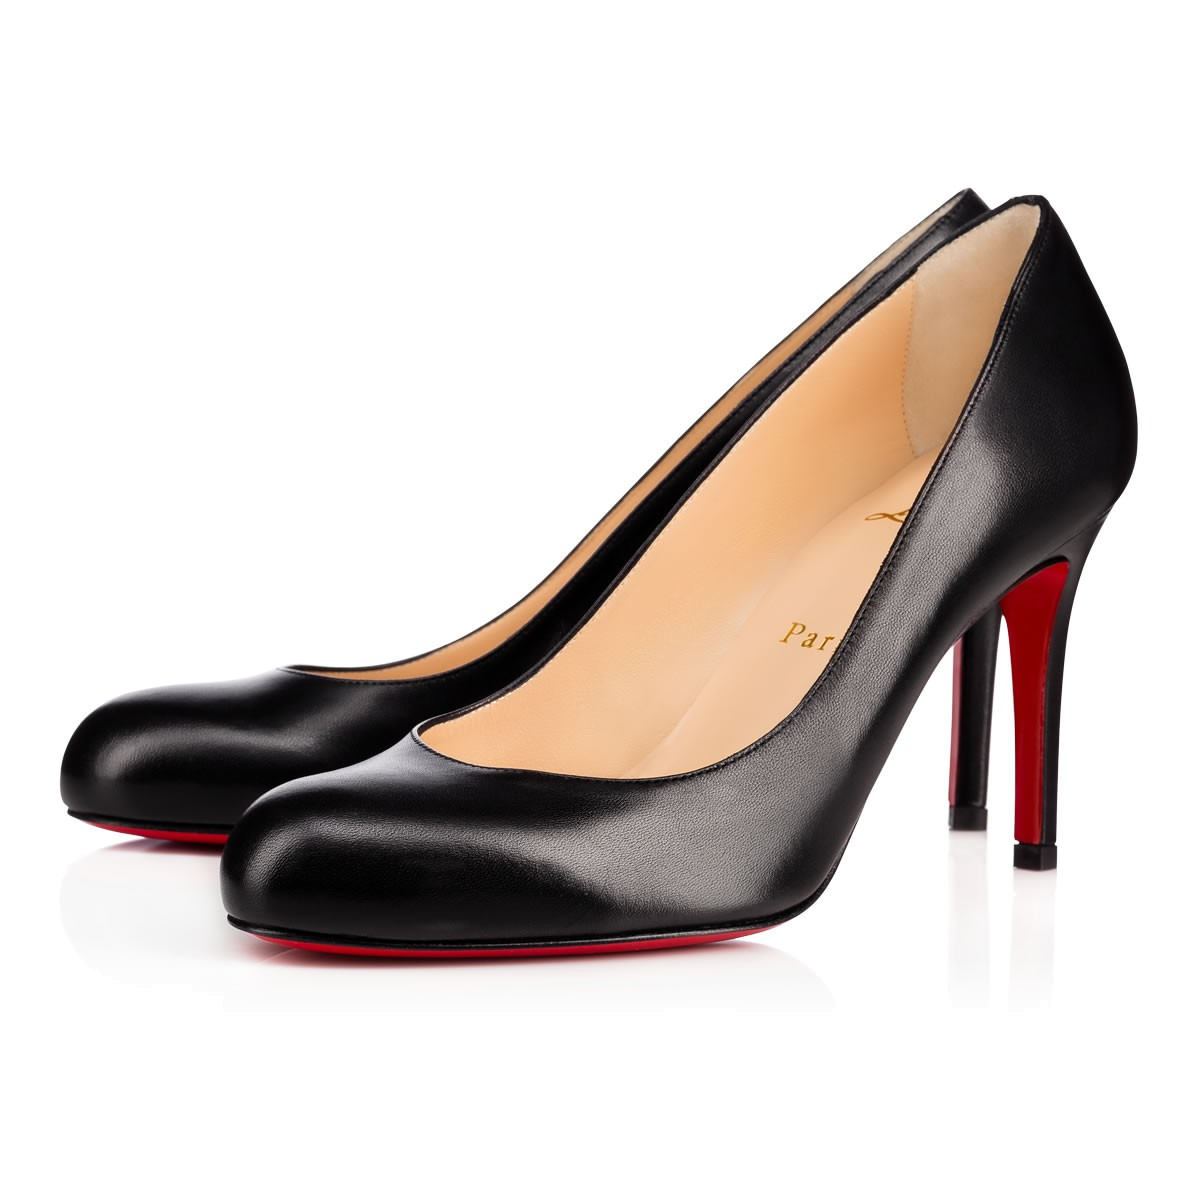 eba1d96f63a7 Shoes - Simple Pump - Christian Louboutin ...